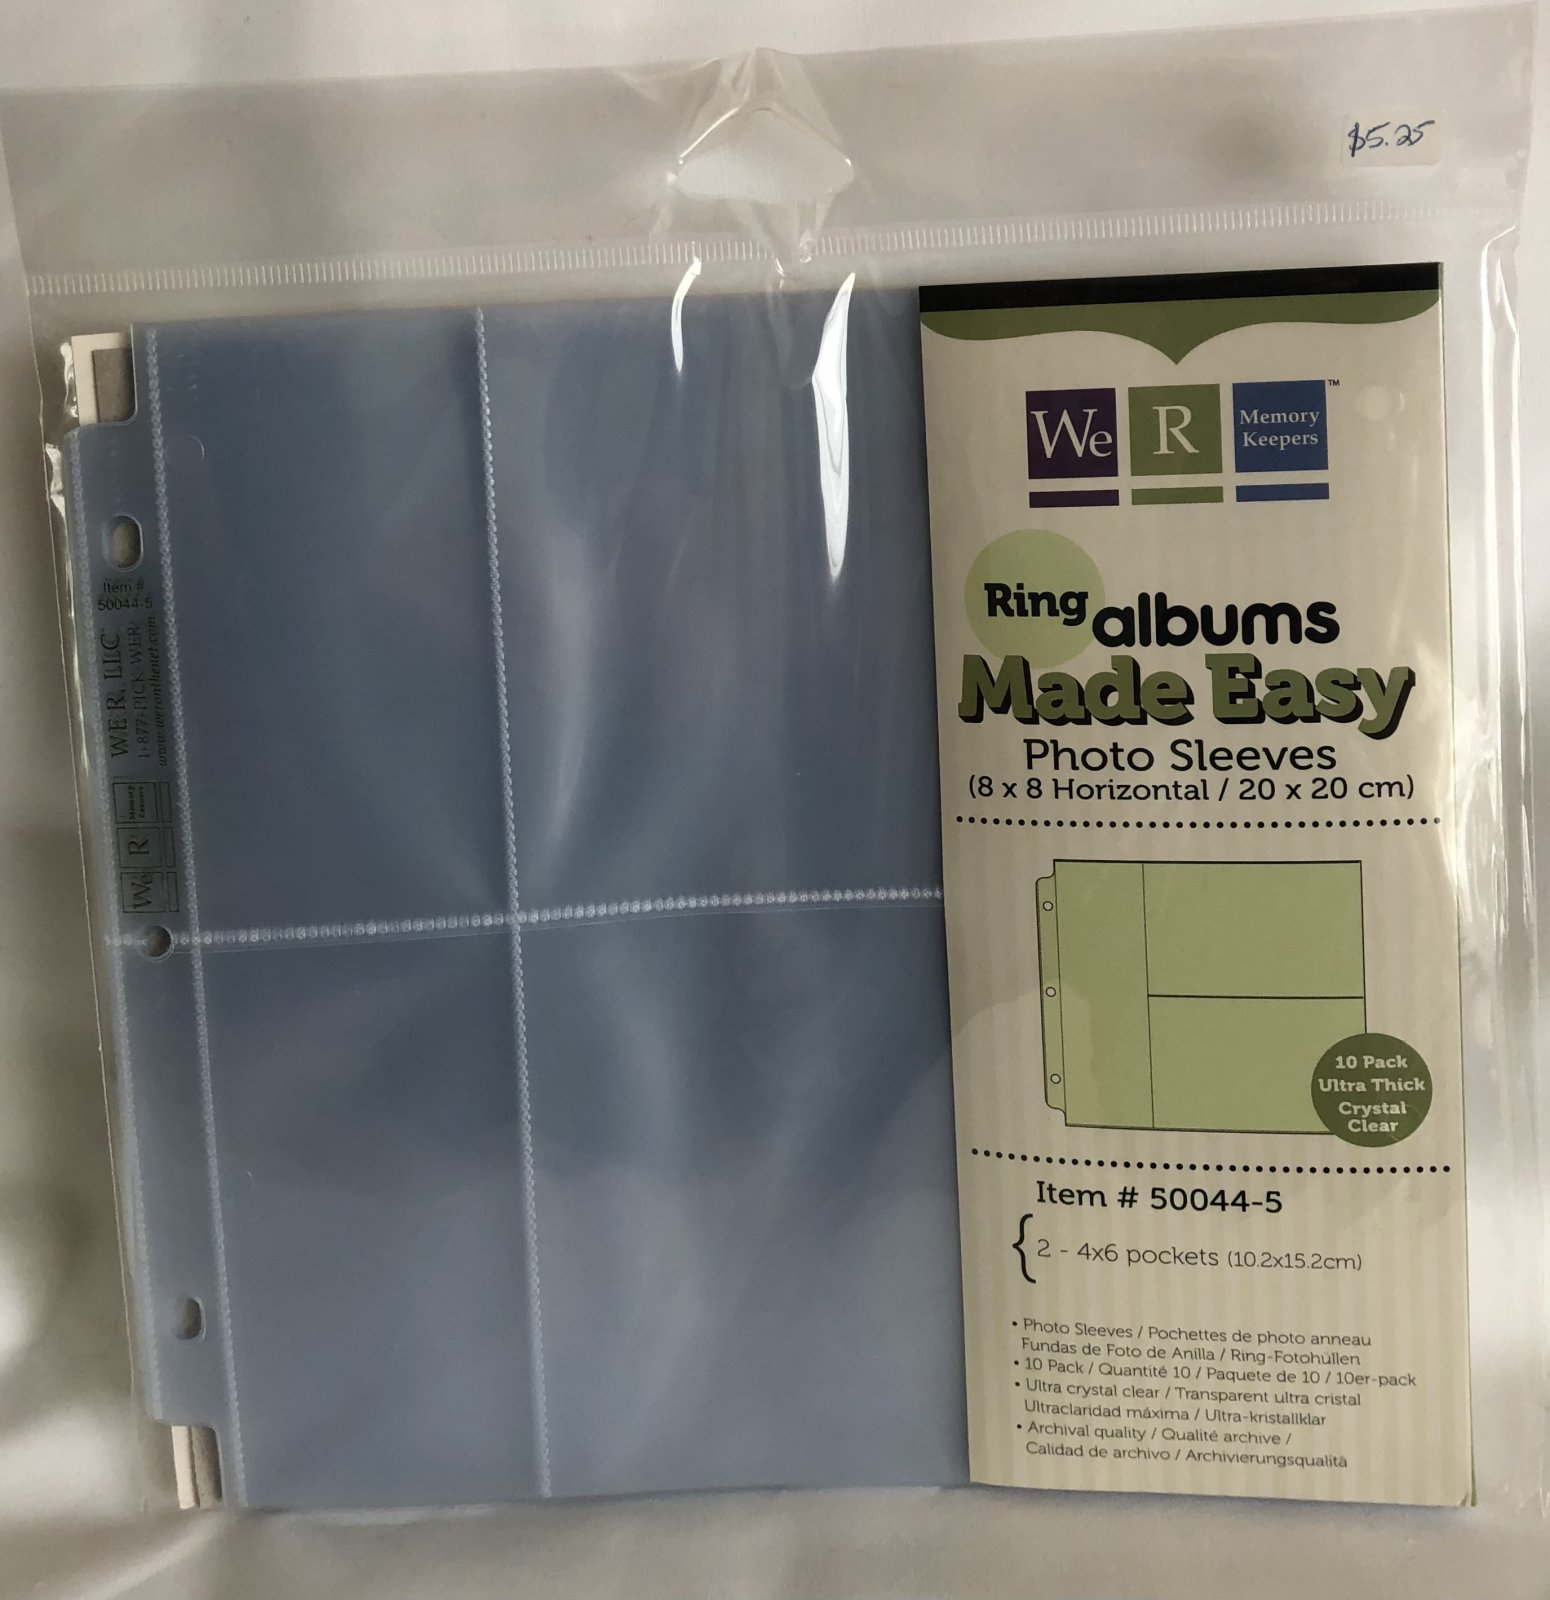 We R Memory Keepers Ring Albums Made Easy 8x8 Photo Sleeves